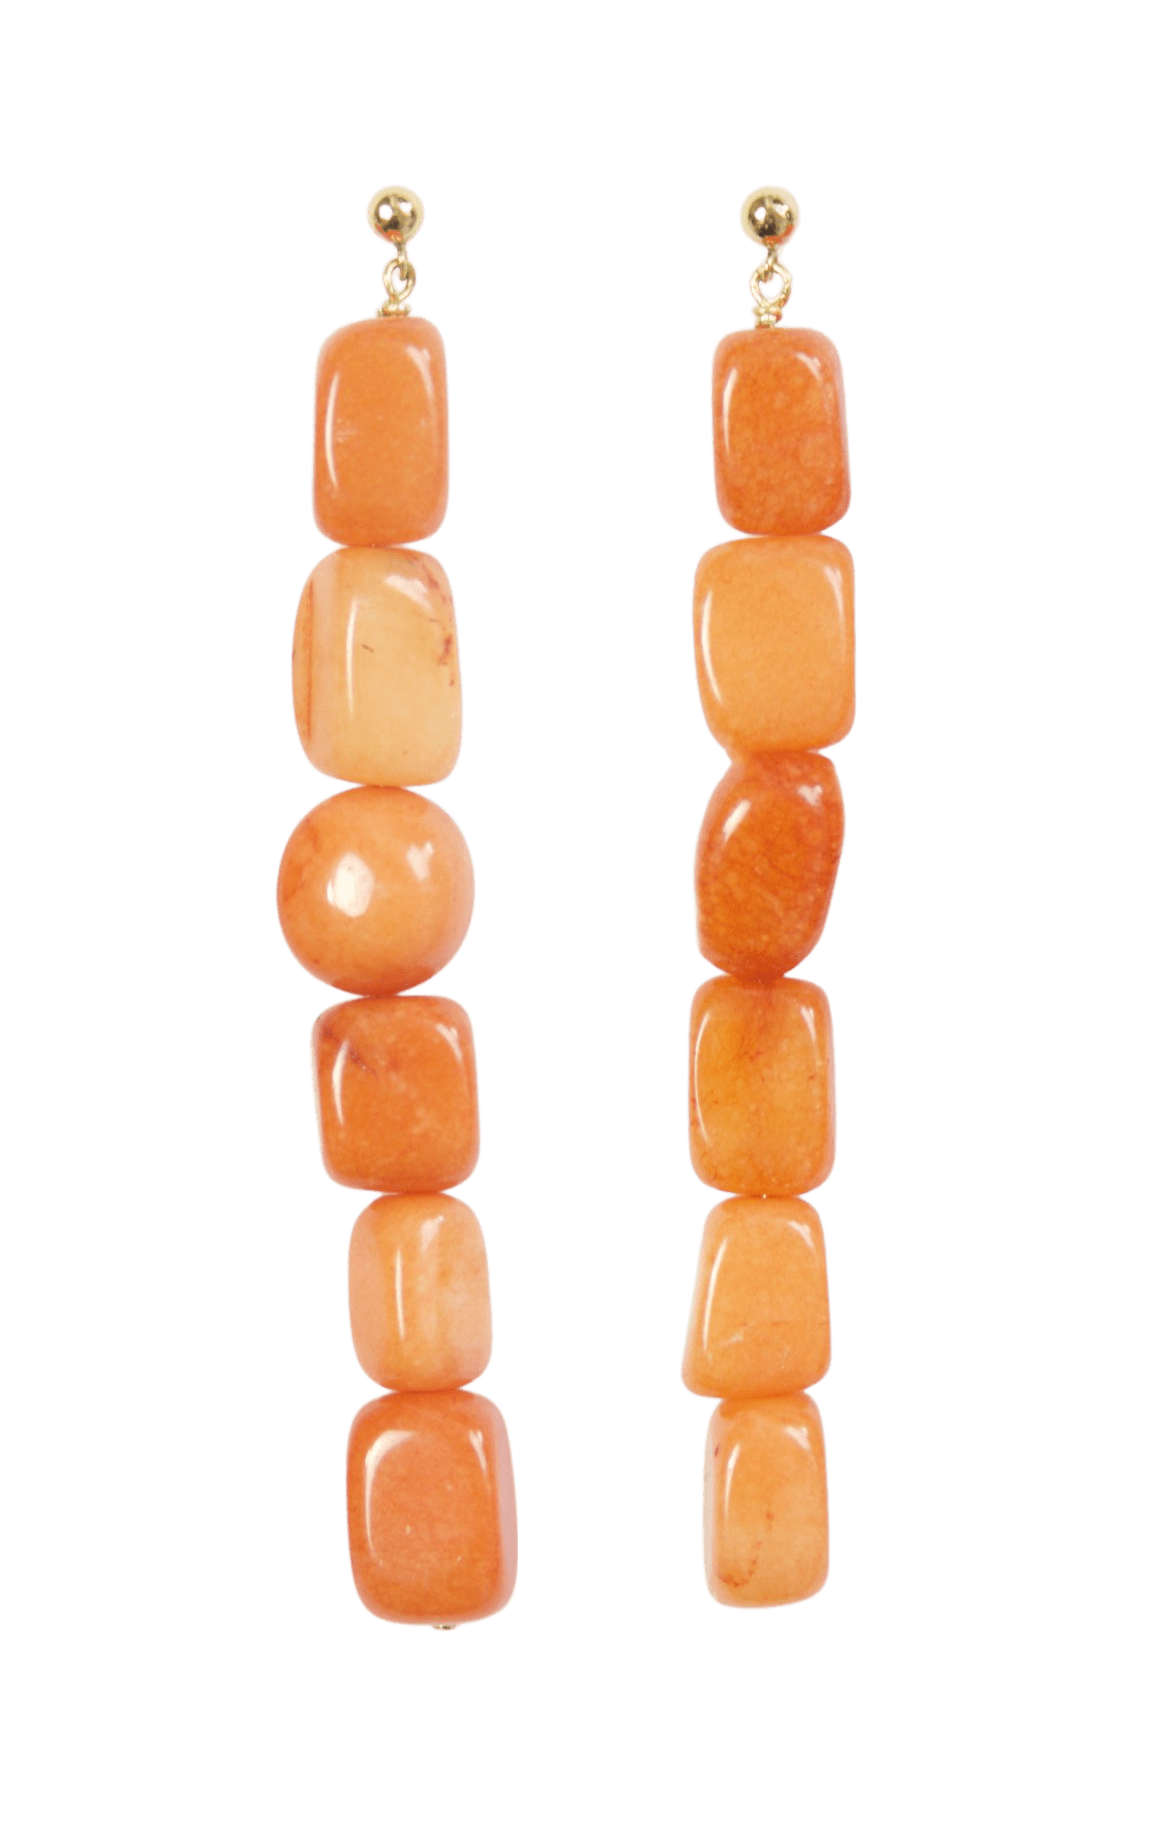 'Clementine' Earrings - Serendipitous Project